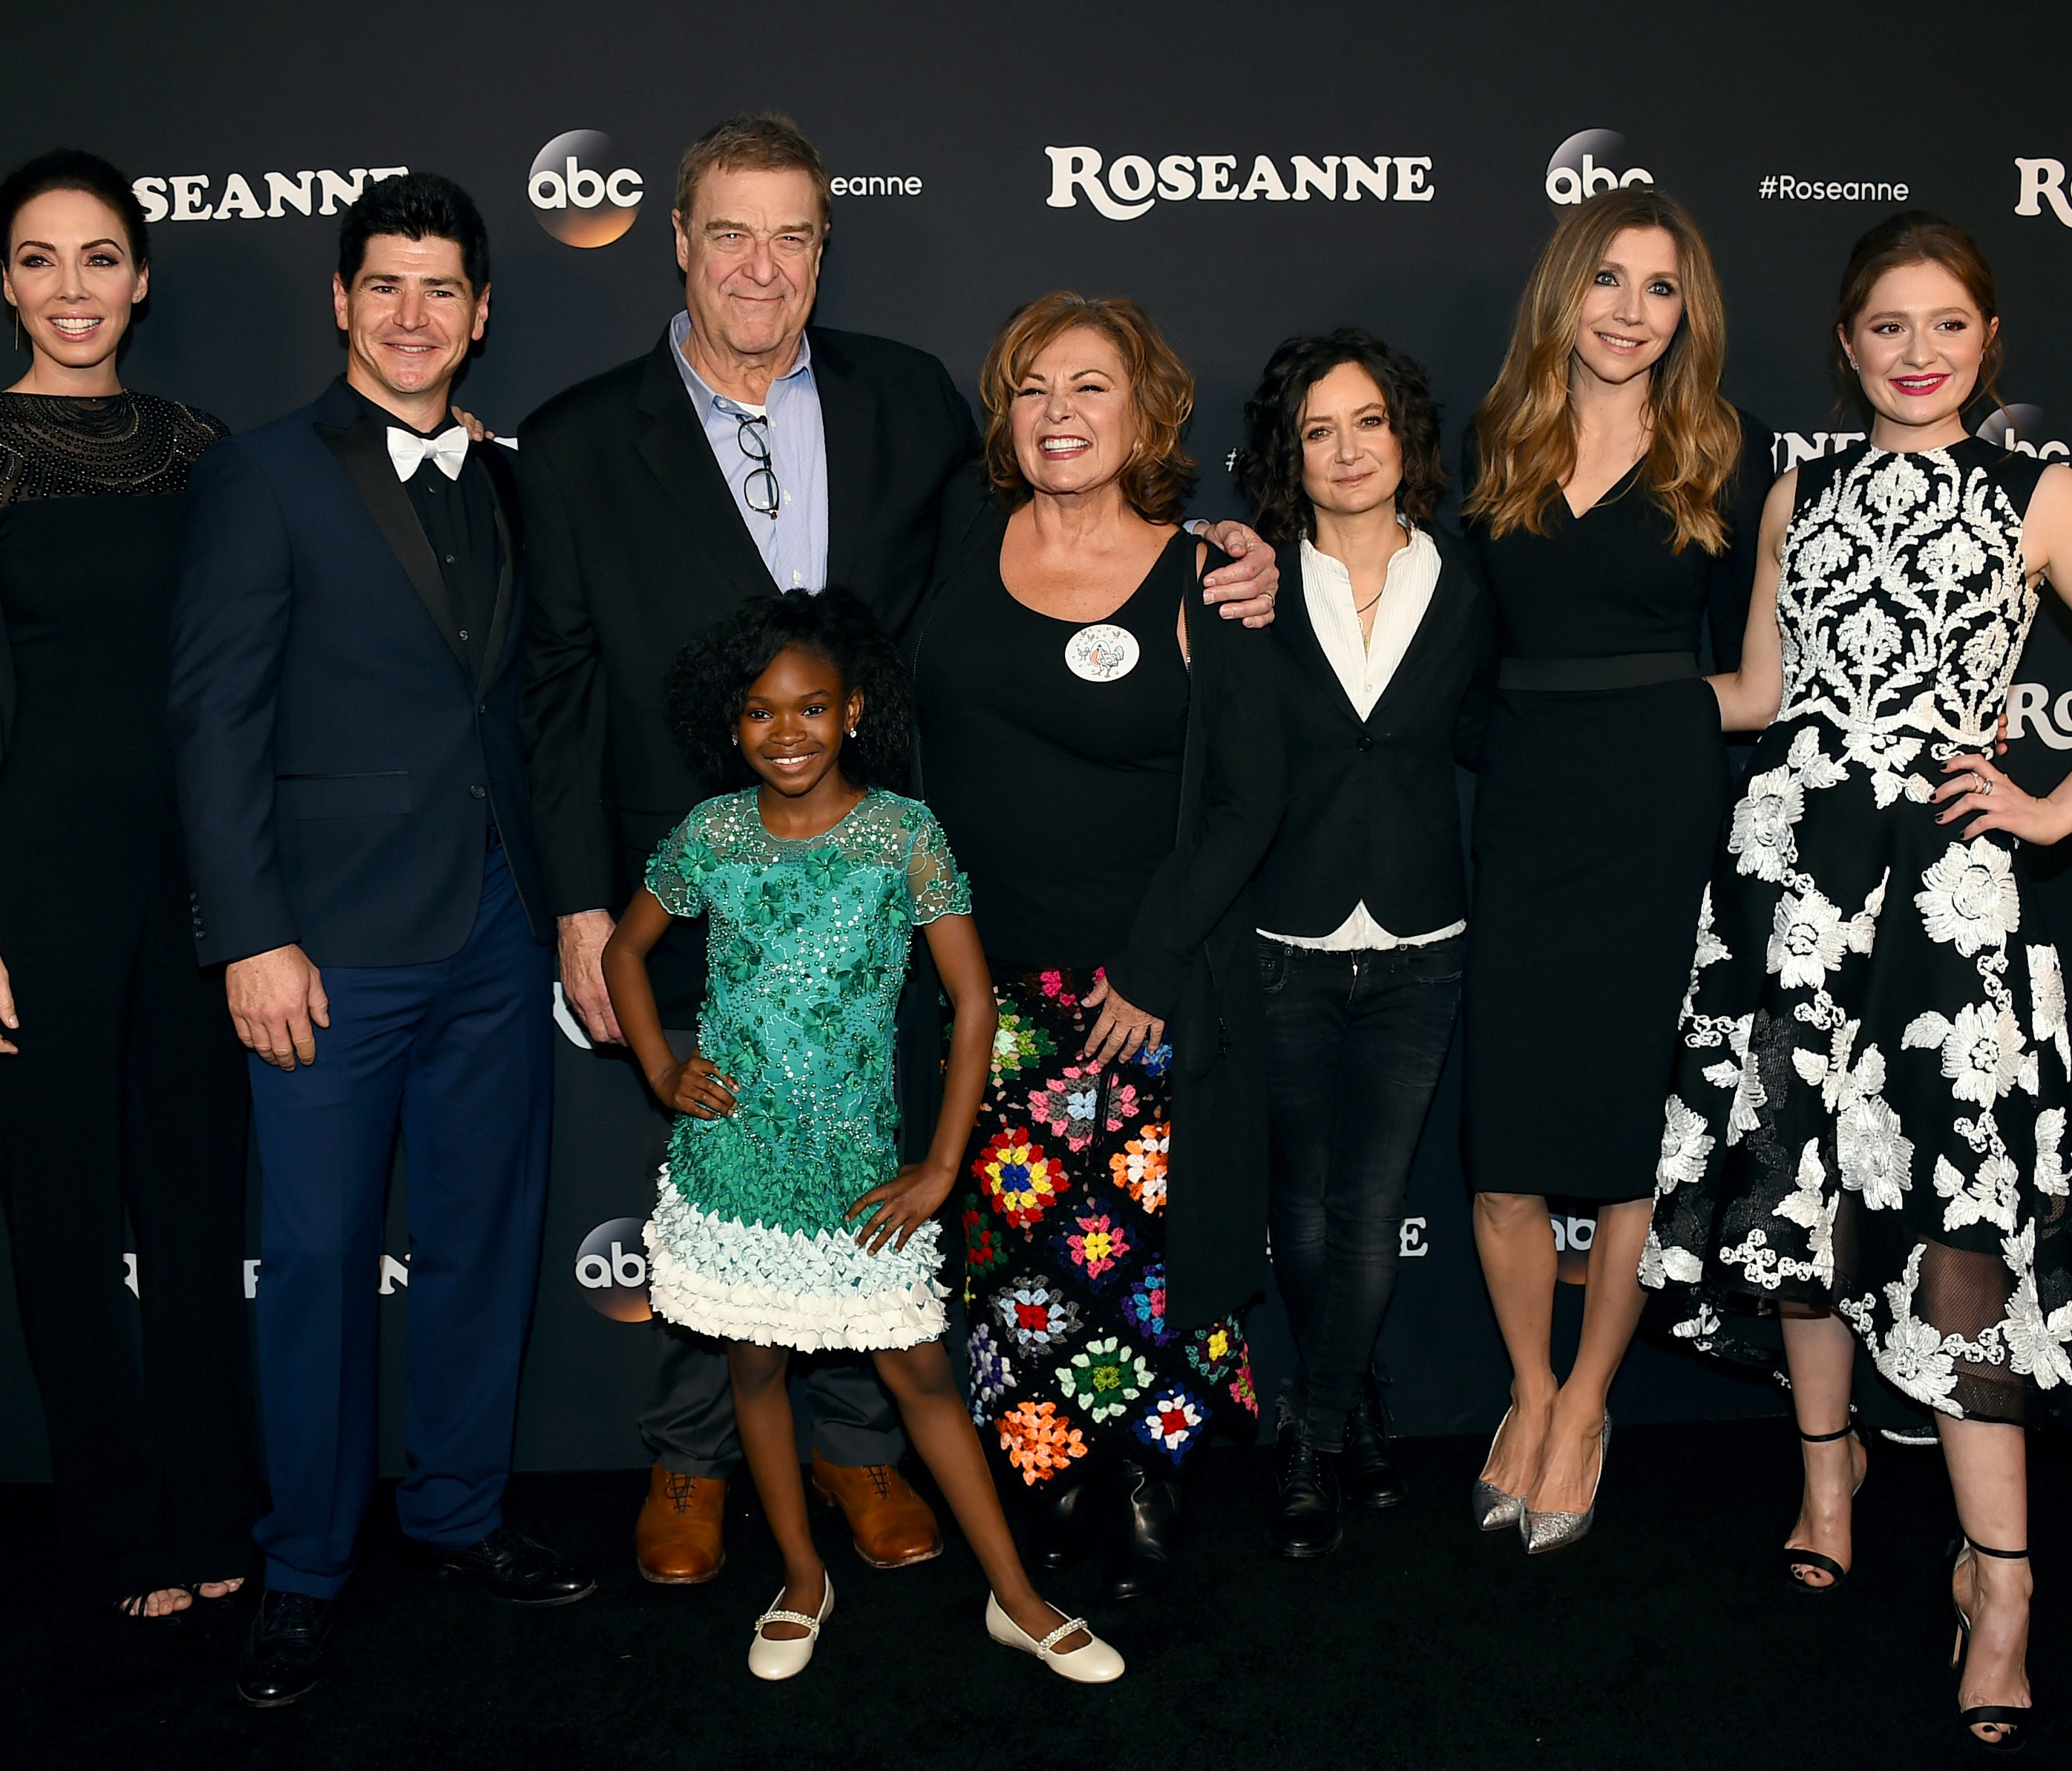 Whitney Cummings, Michael Fishman, John Goodman, Jayden Rey, Roseanne Barr, Sara Gilbert, Sarah Chalke and Emma Kenney arrive at the Los Angeles premiere of